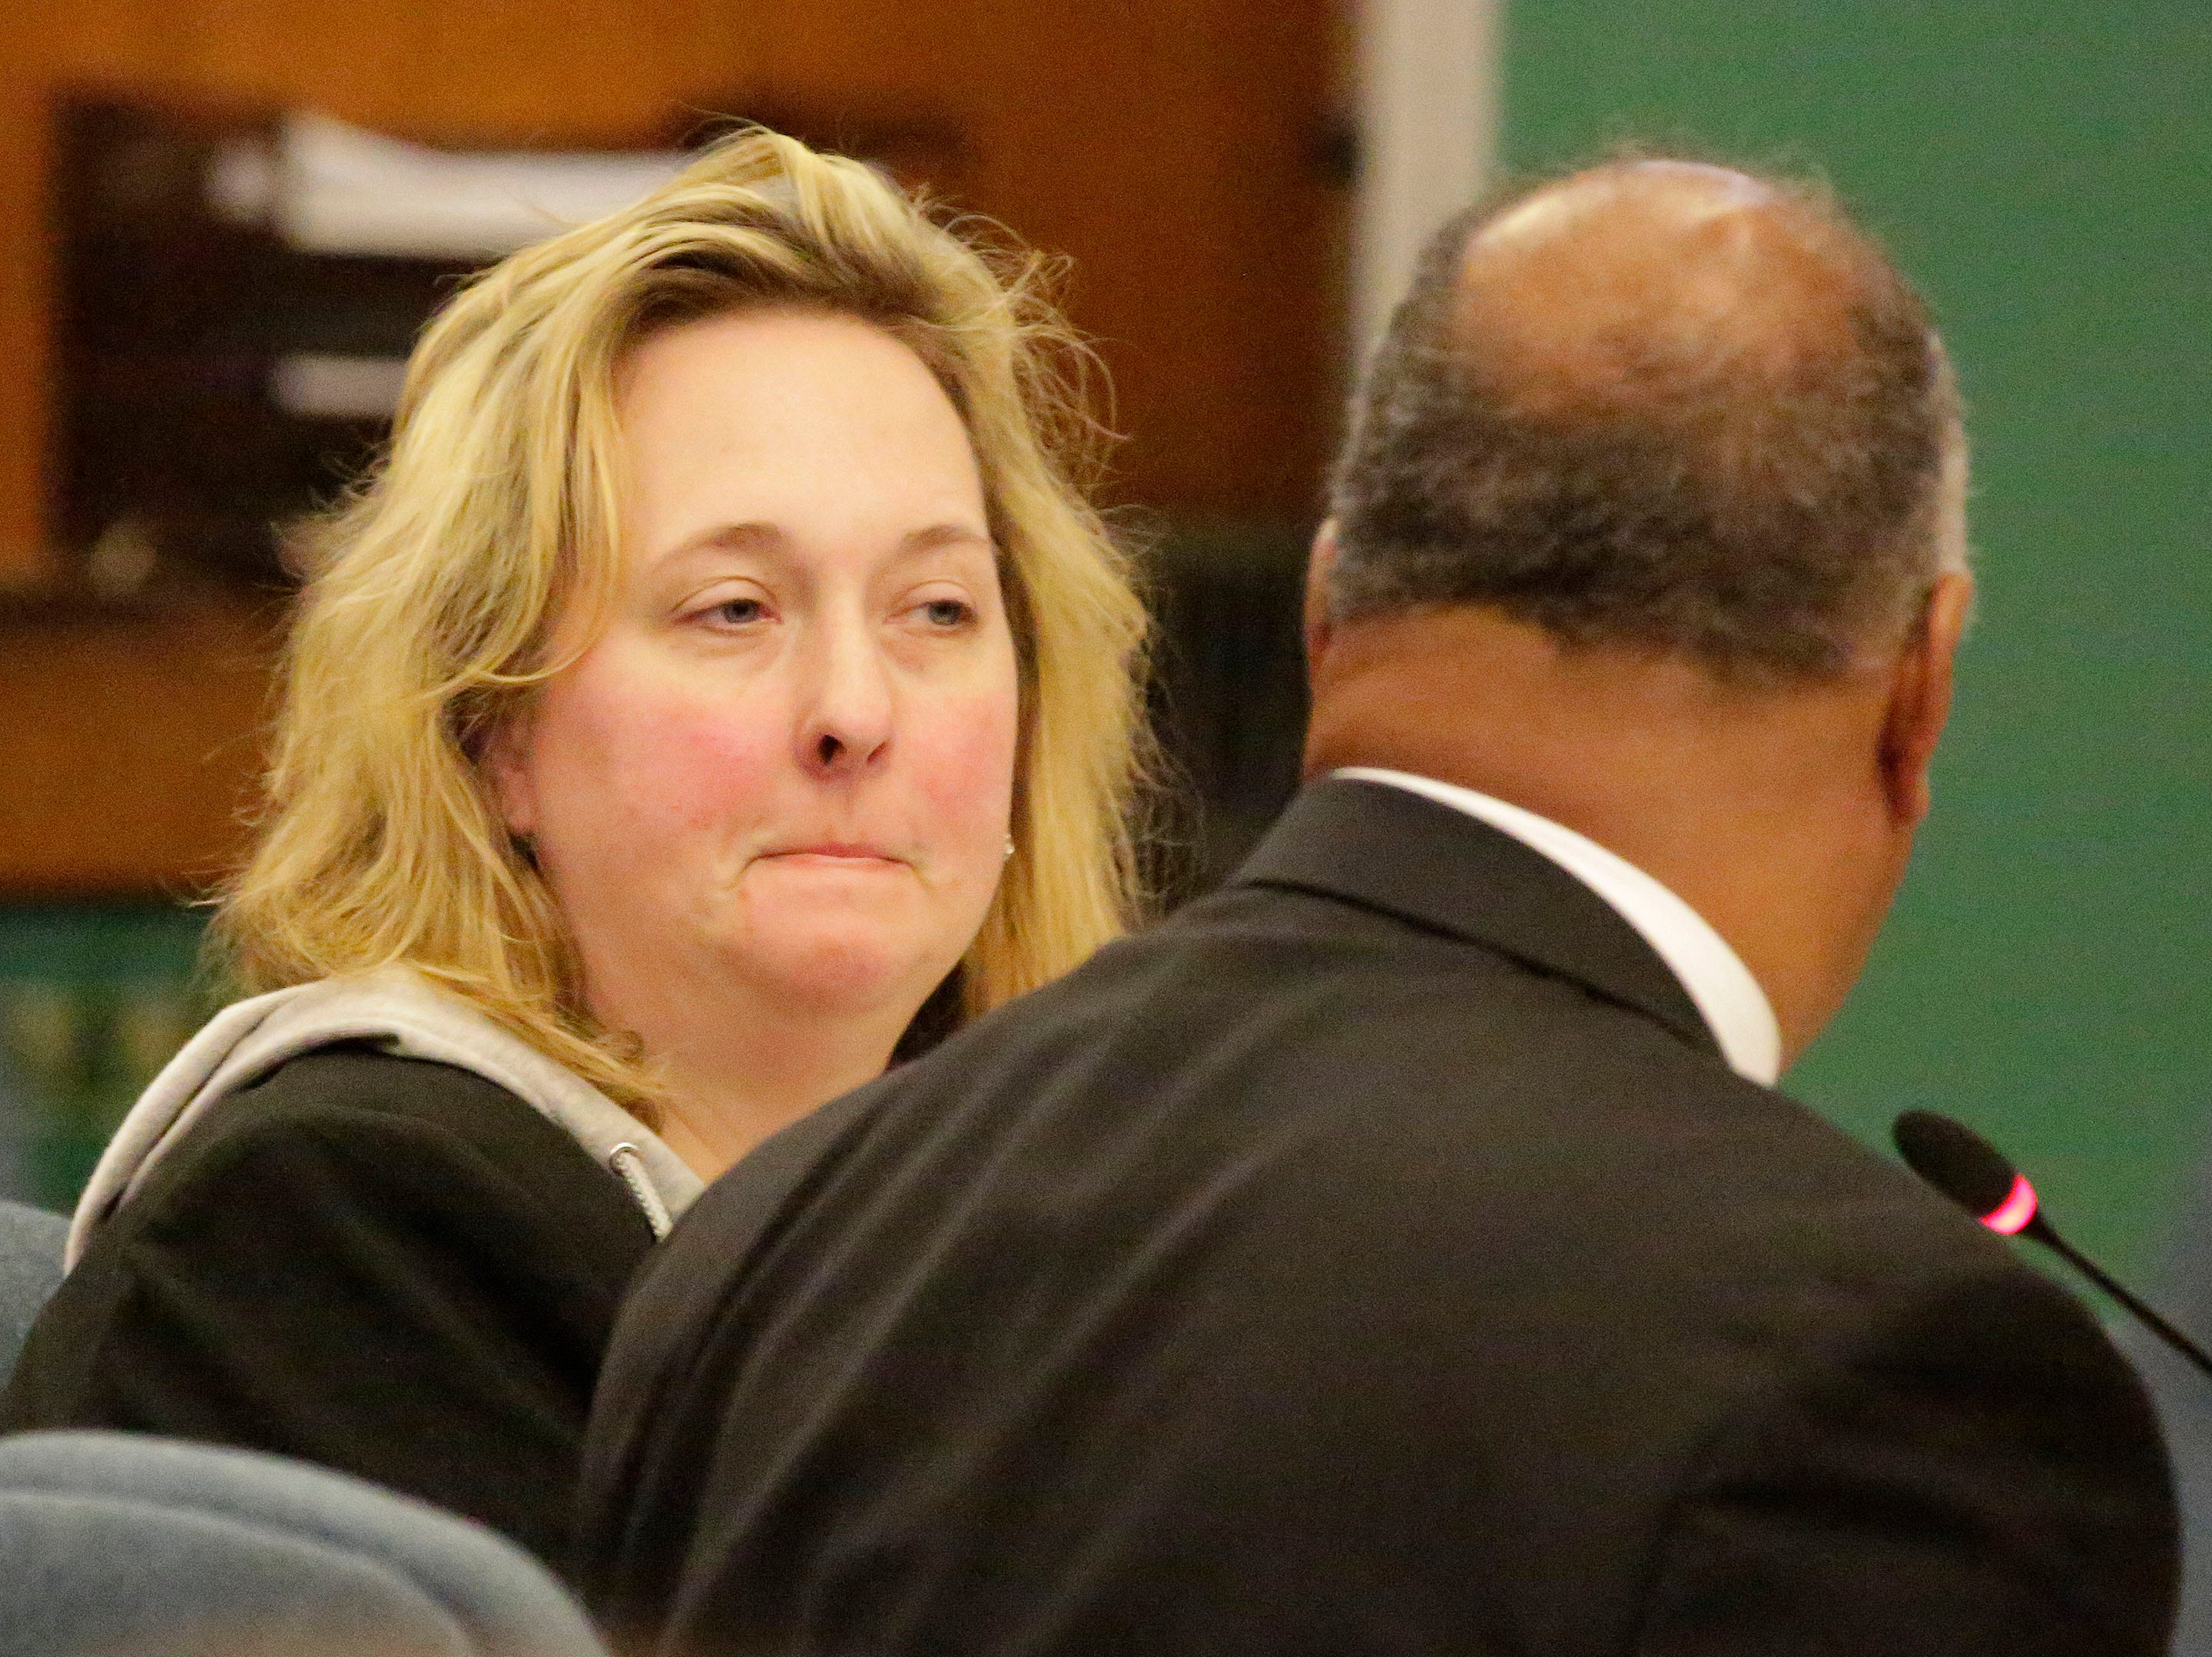 Former Kinship Companions owner Christy Rose Tuchel, left, purses her lips as she sits next to her attorney, Gary George, in Sheboygan County Circuit Court Branch 1 during her sentencing hearing, Friday, October 5, 2018, in Sheboygan, Wis. Tuchel received a 1 year jail sentence and 8 years of probation.